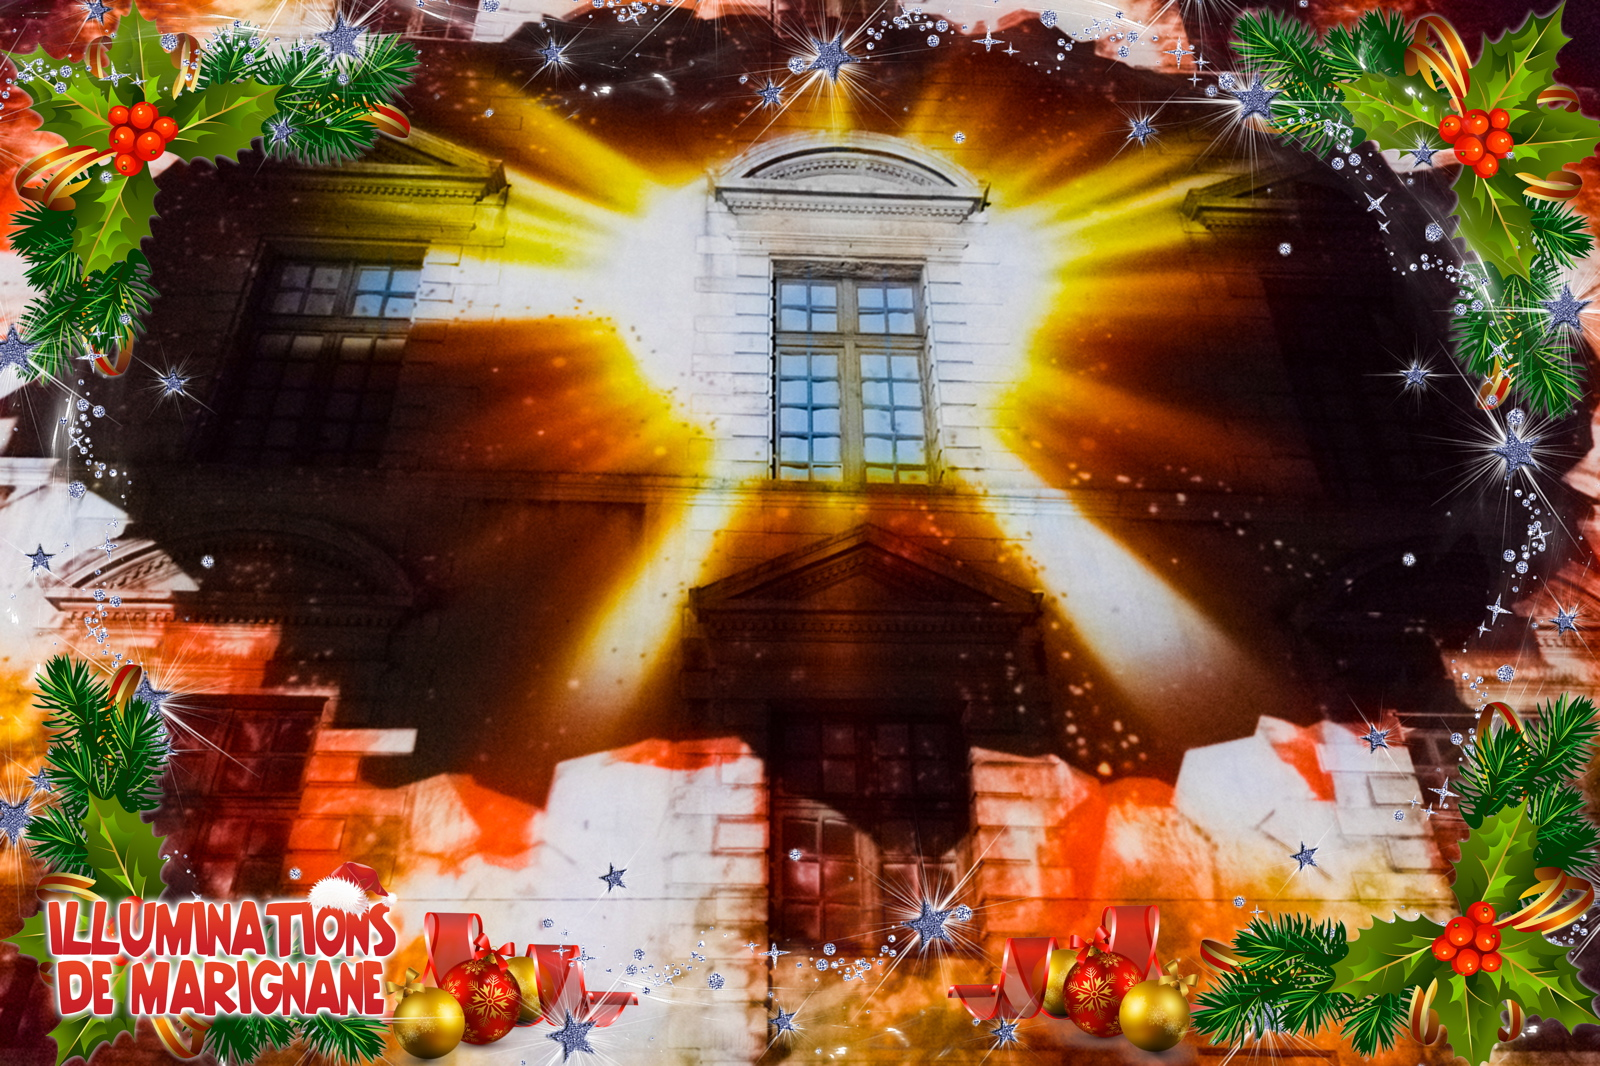 Video Decor Noel Videoprojection